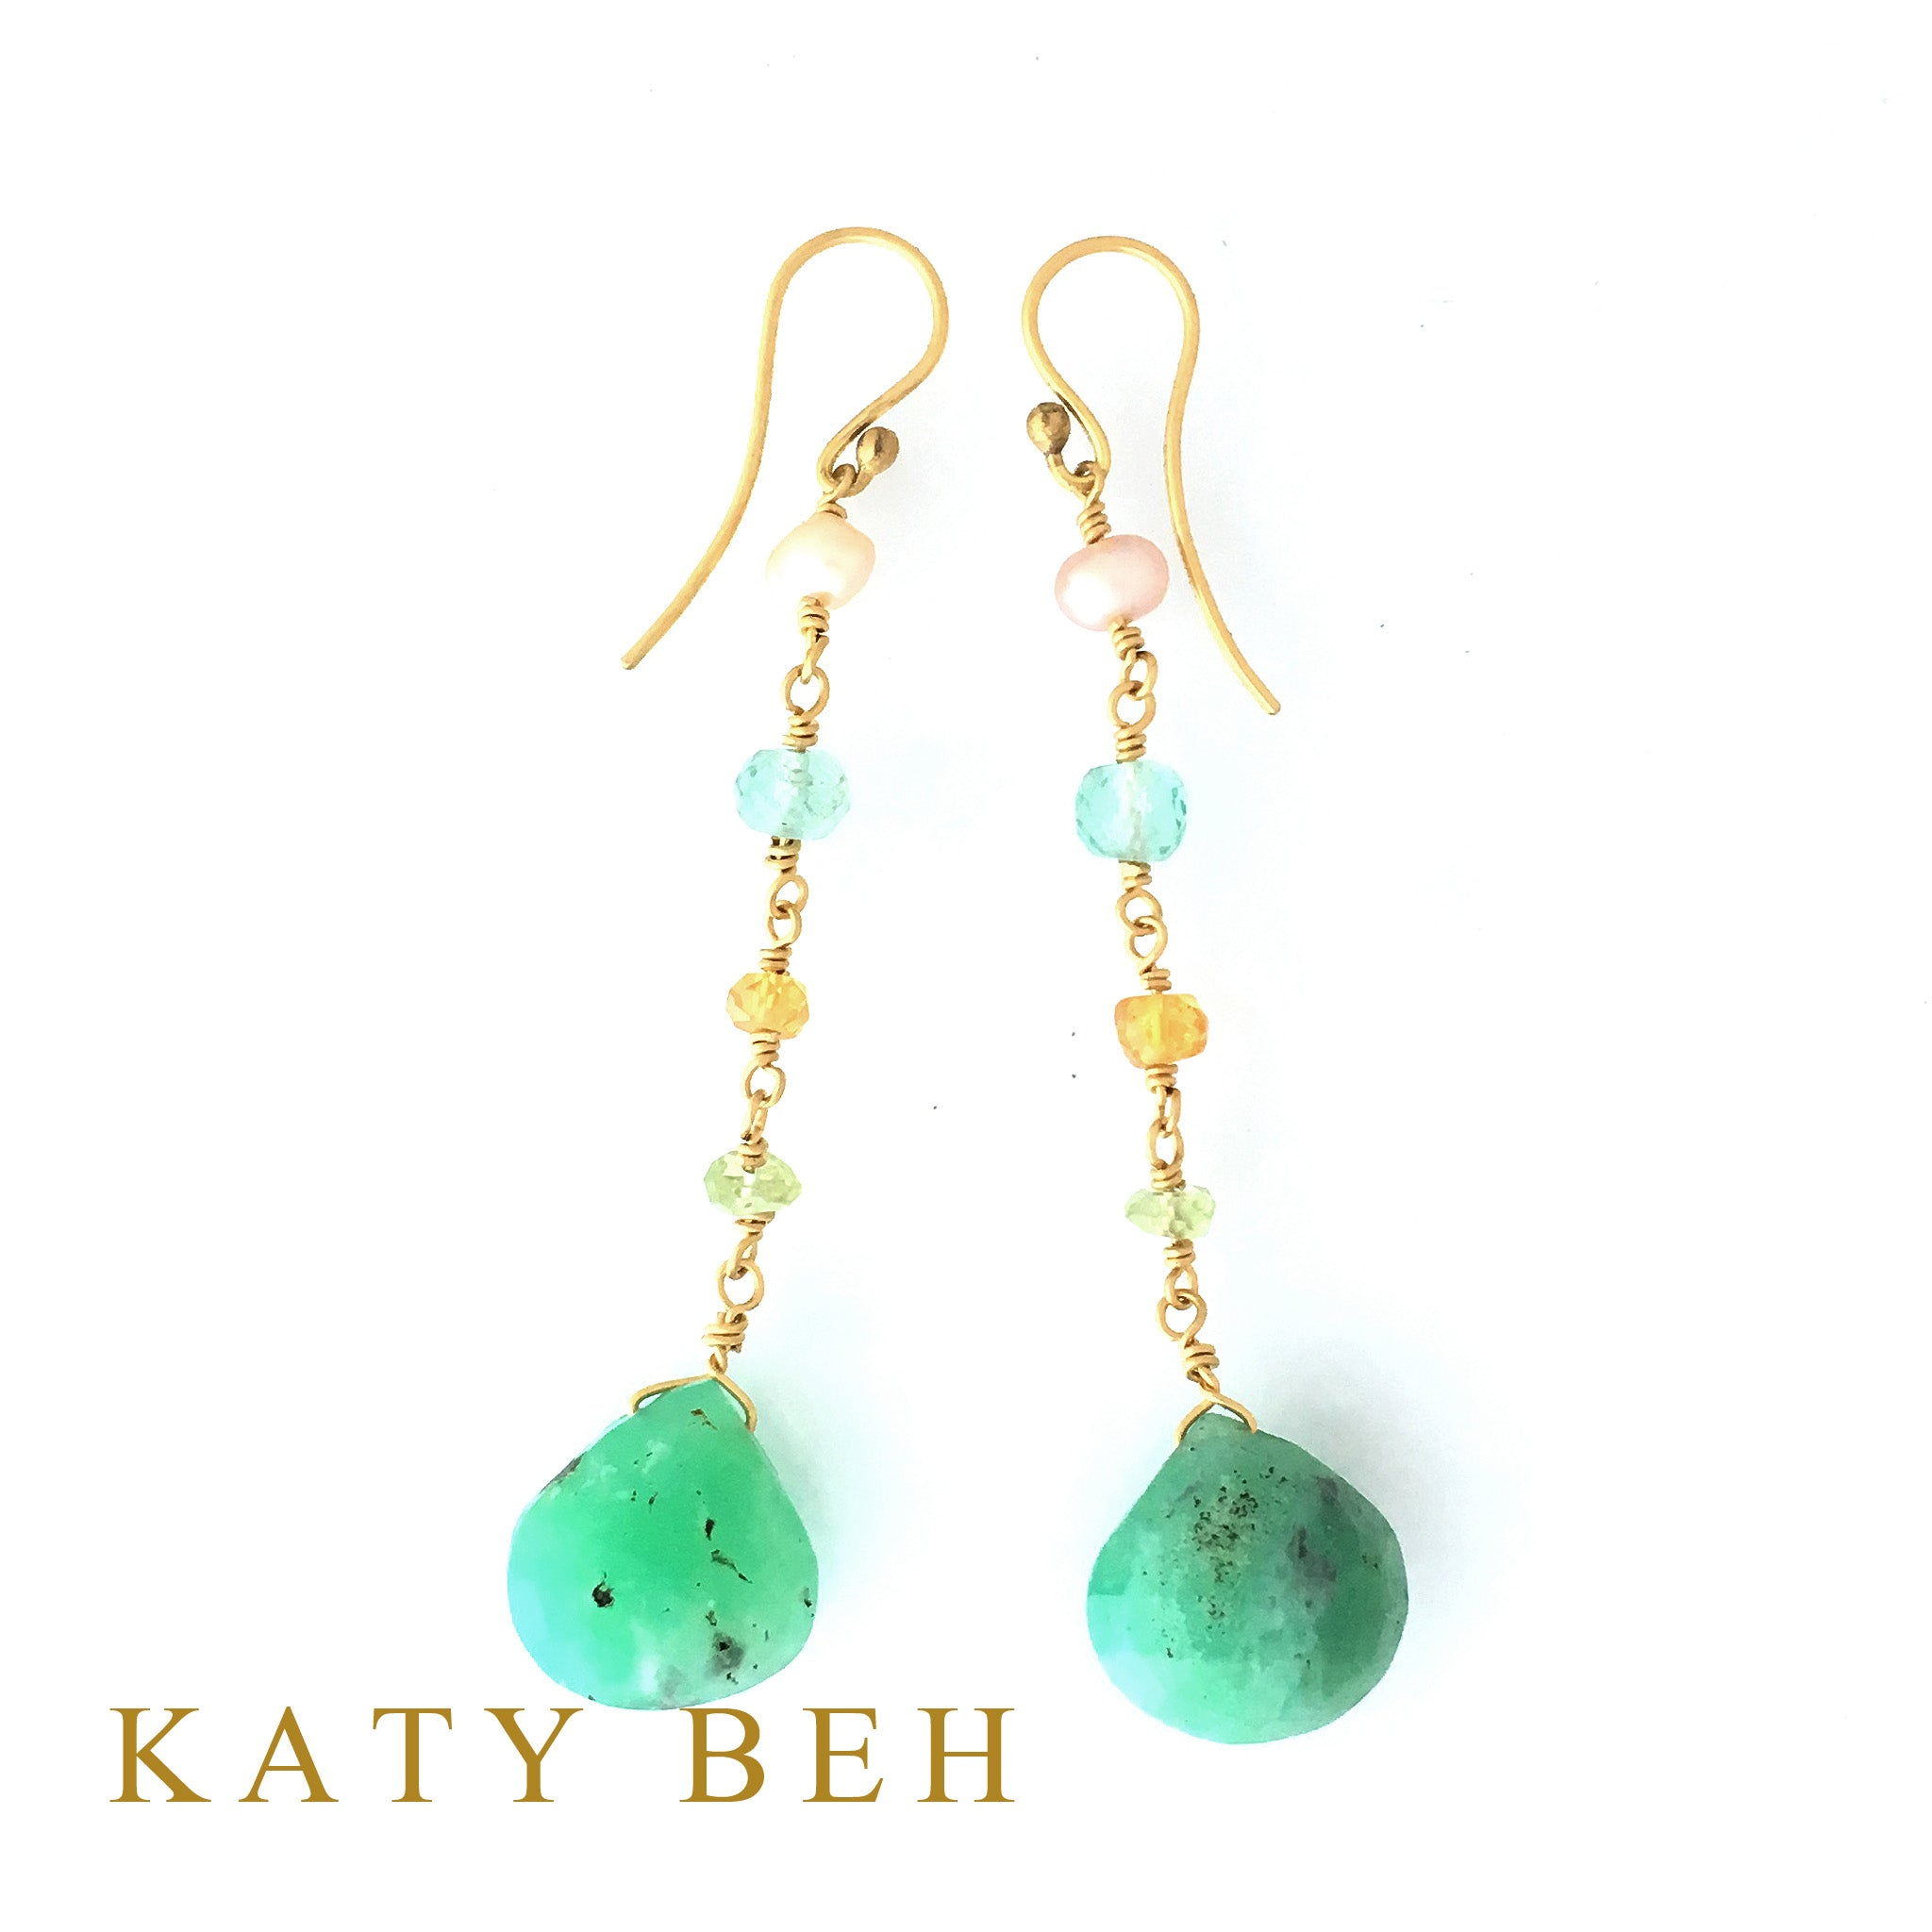 Re Chrysoprase & Gemstone Mix Earrings